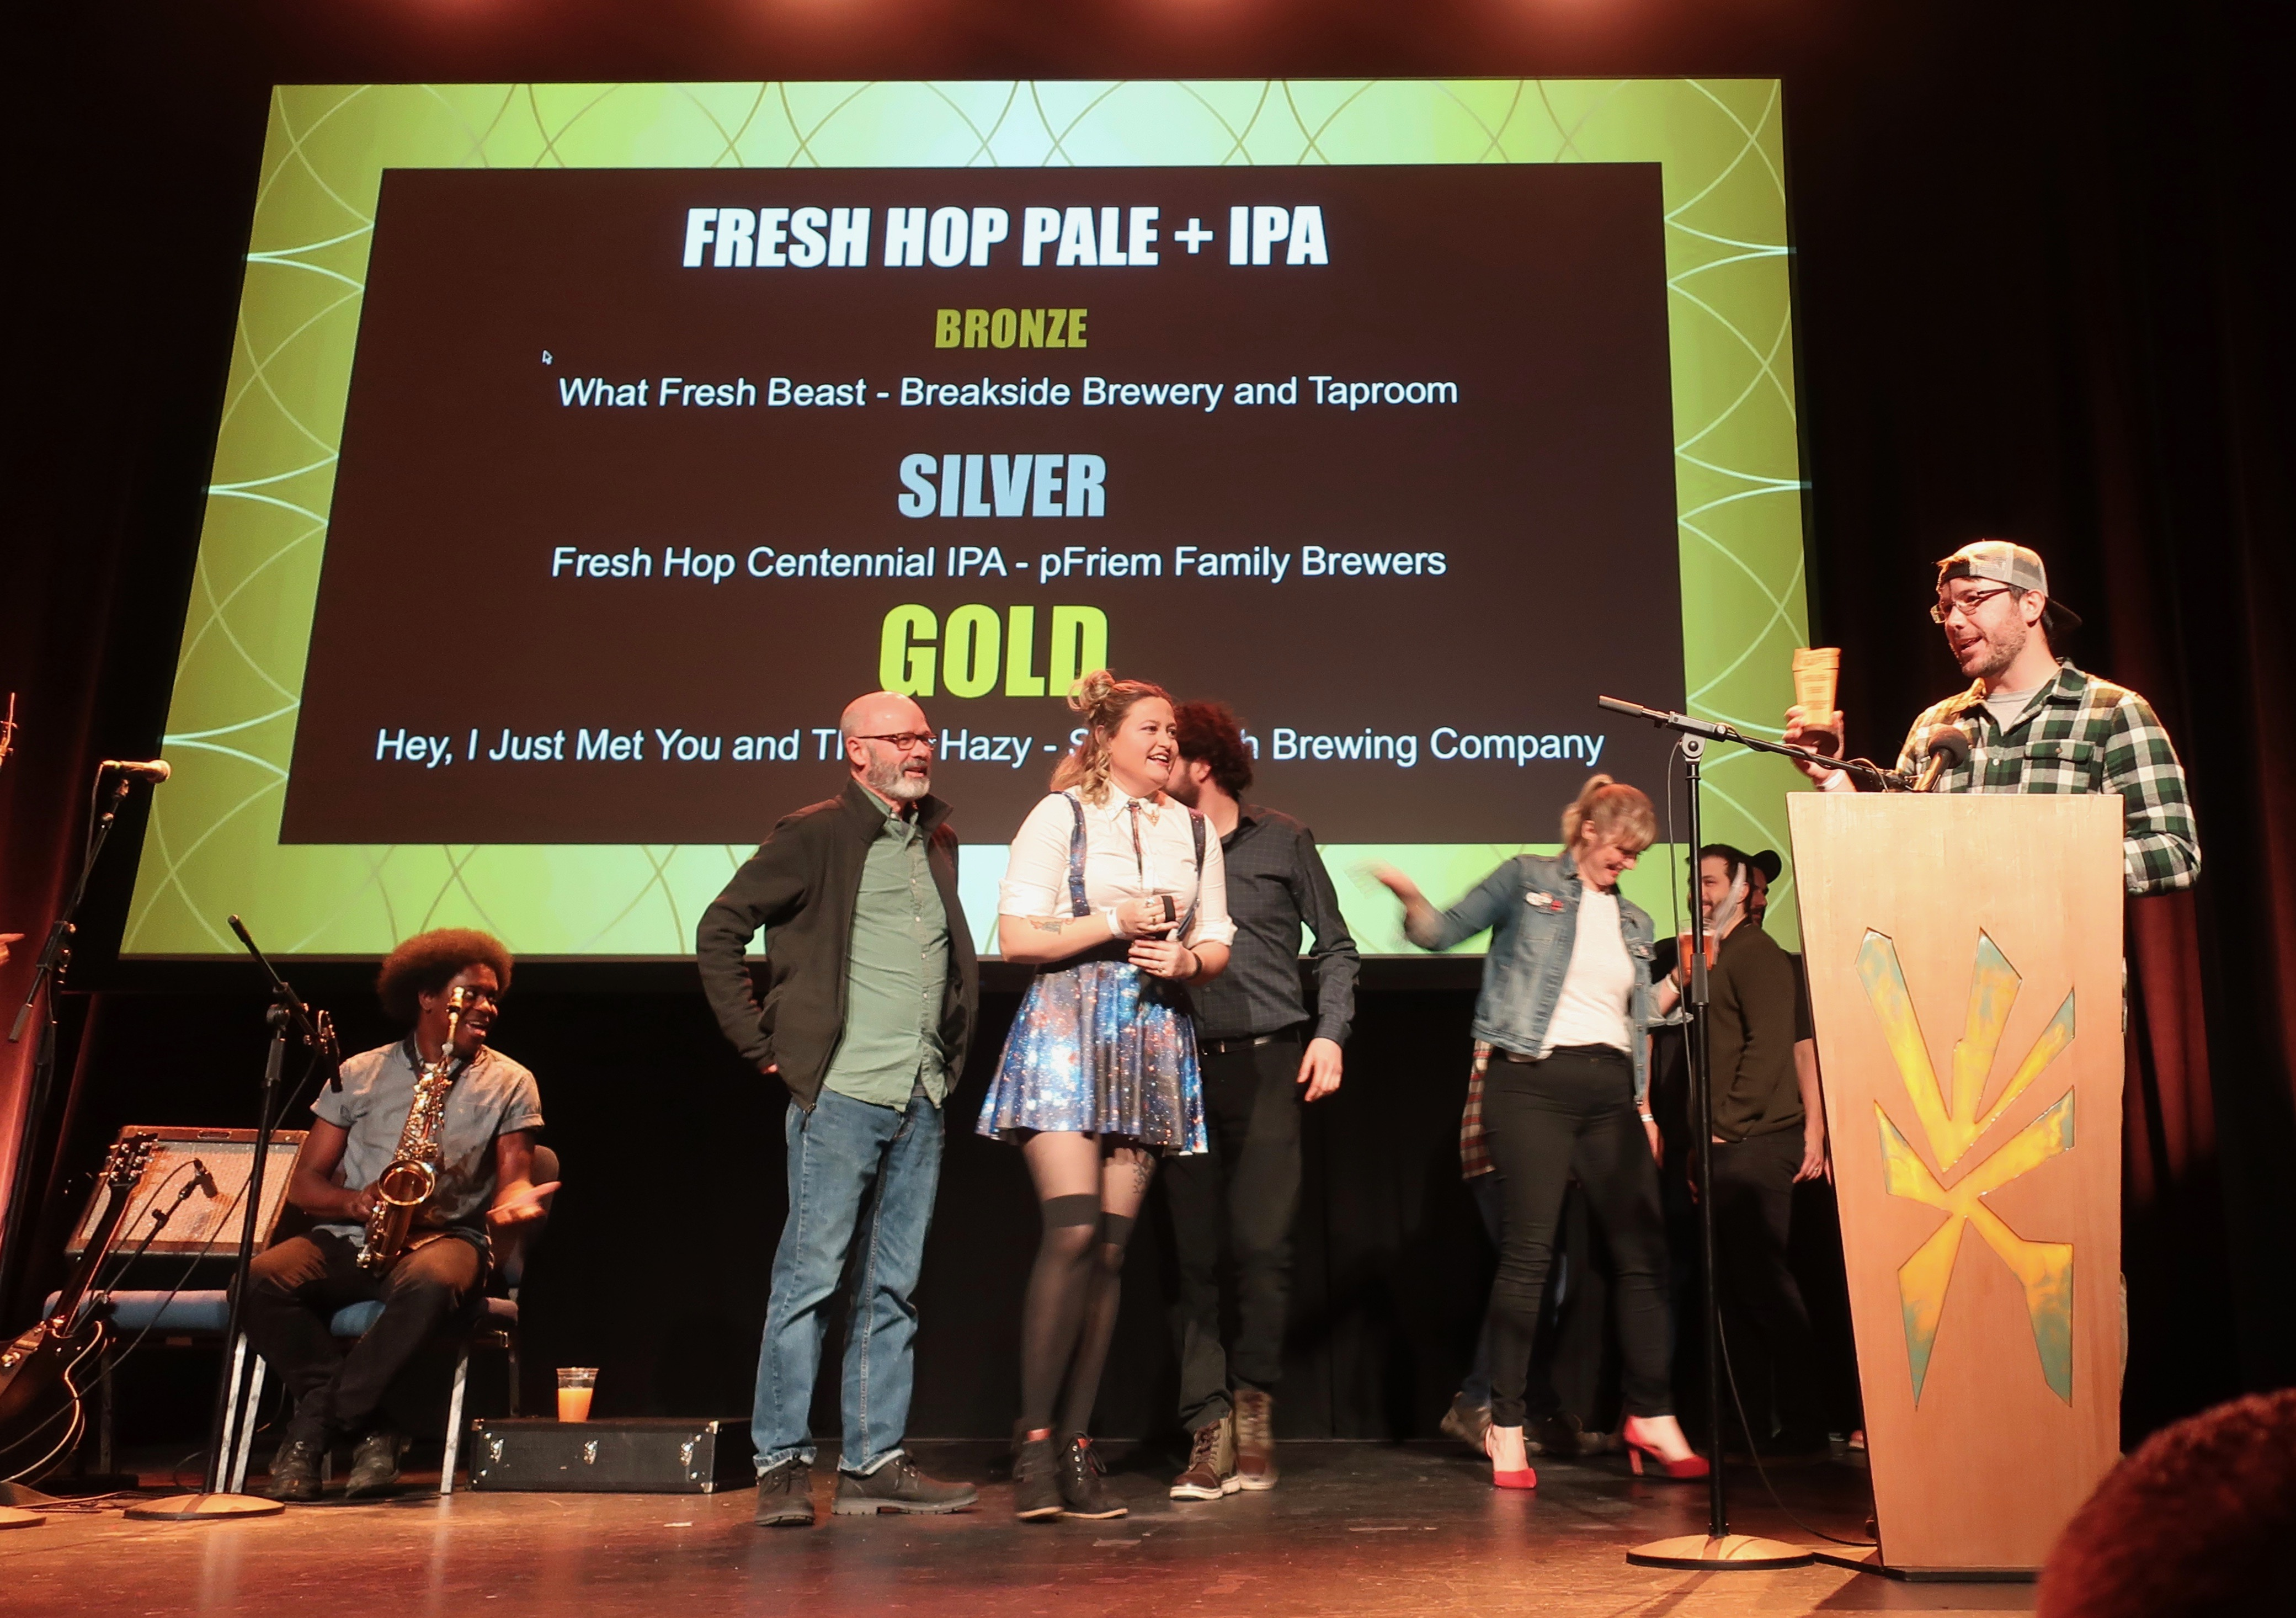 Sasquatch Brewery takes the Gold for Fresh Hop Pale + IPA at the 2019 Oregon Beer Awards.